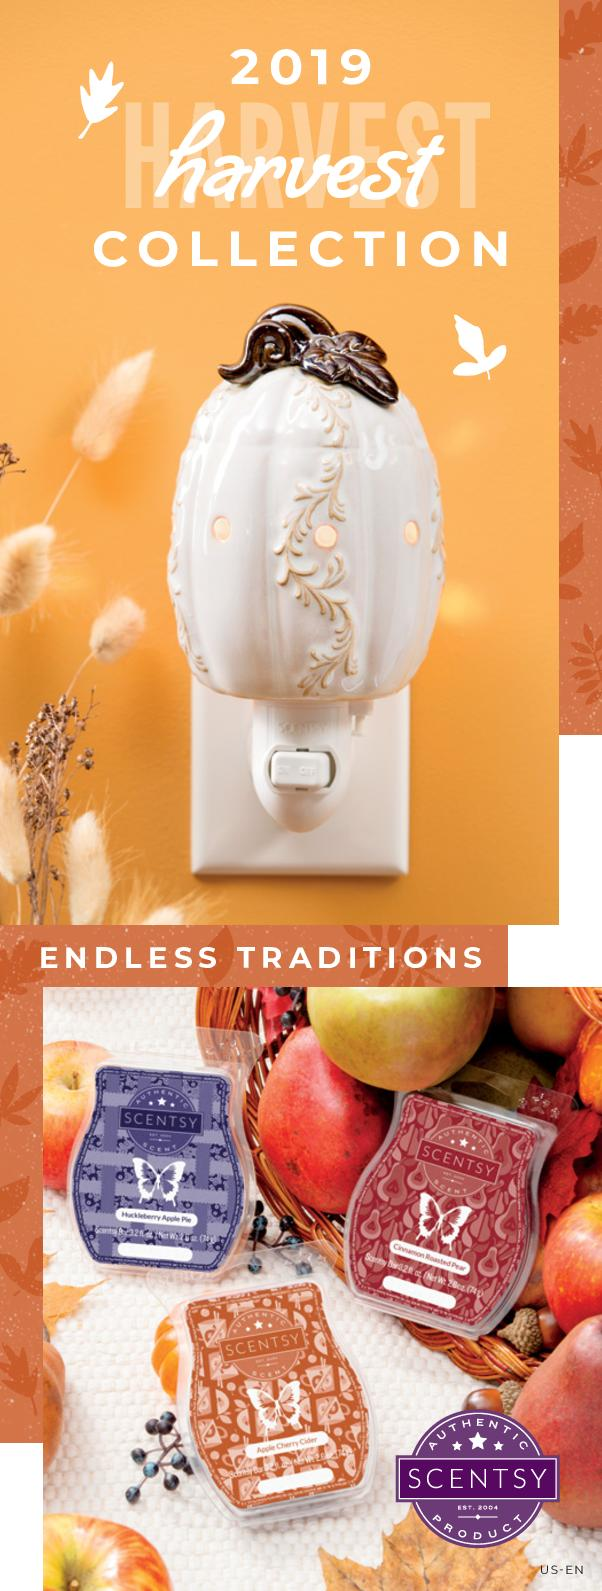 Calameo Scentsy Fall 2019 Harvest Brochure